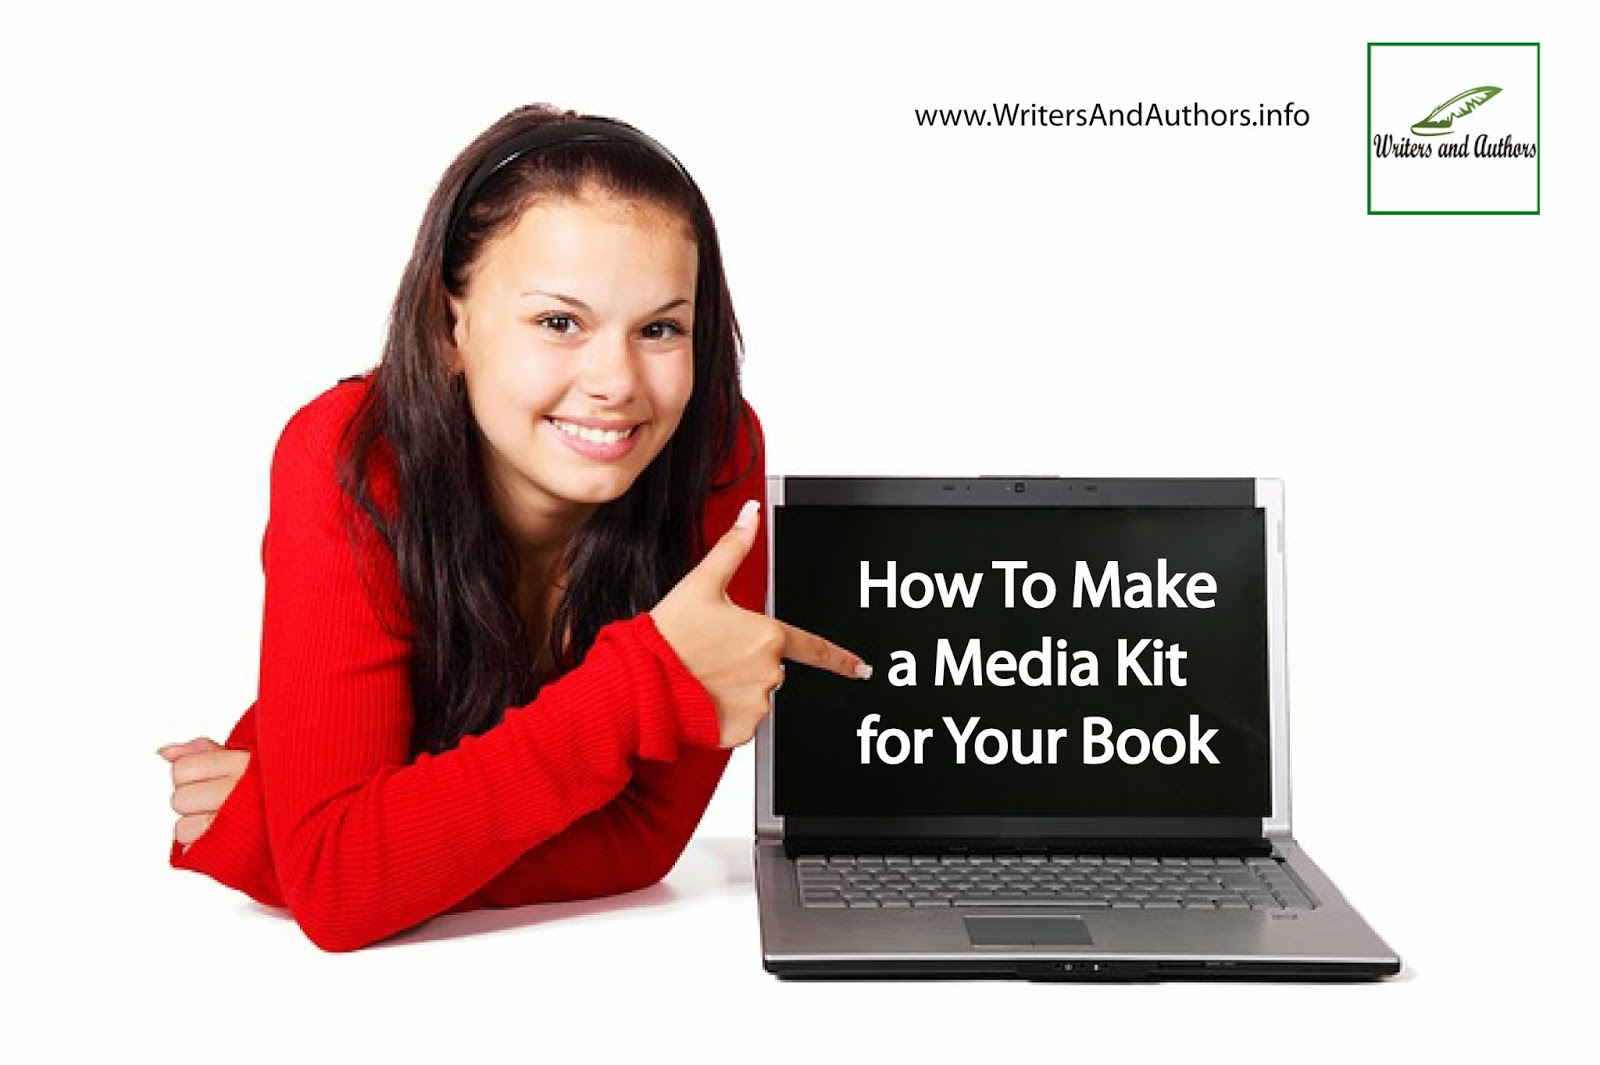 How To Make a Media Kit for Your Book, www.WritersAndAuthors.info #Authors #Books